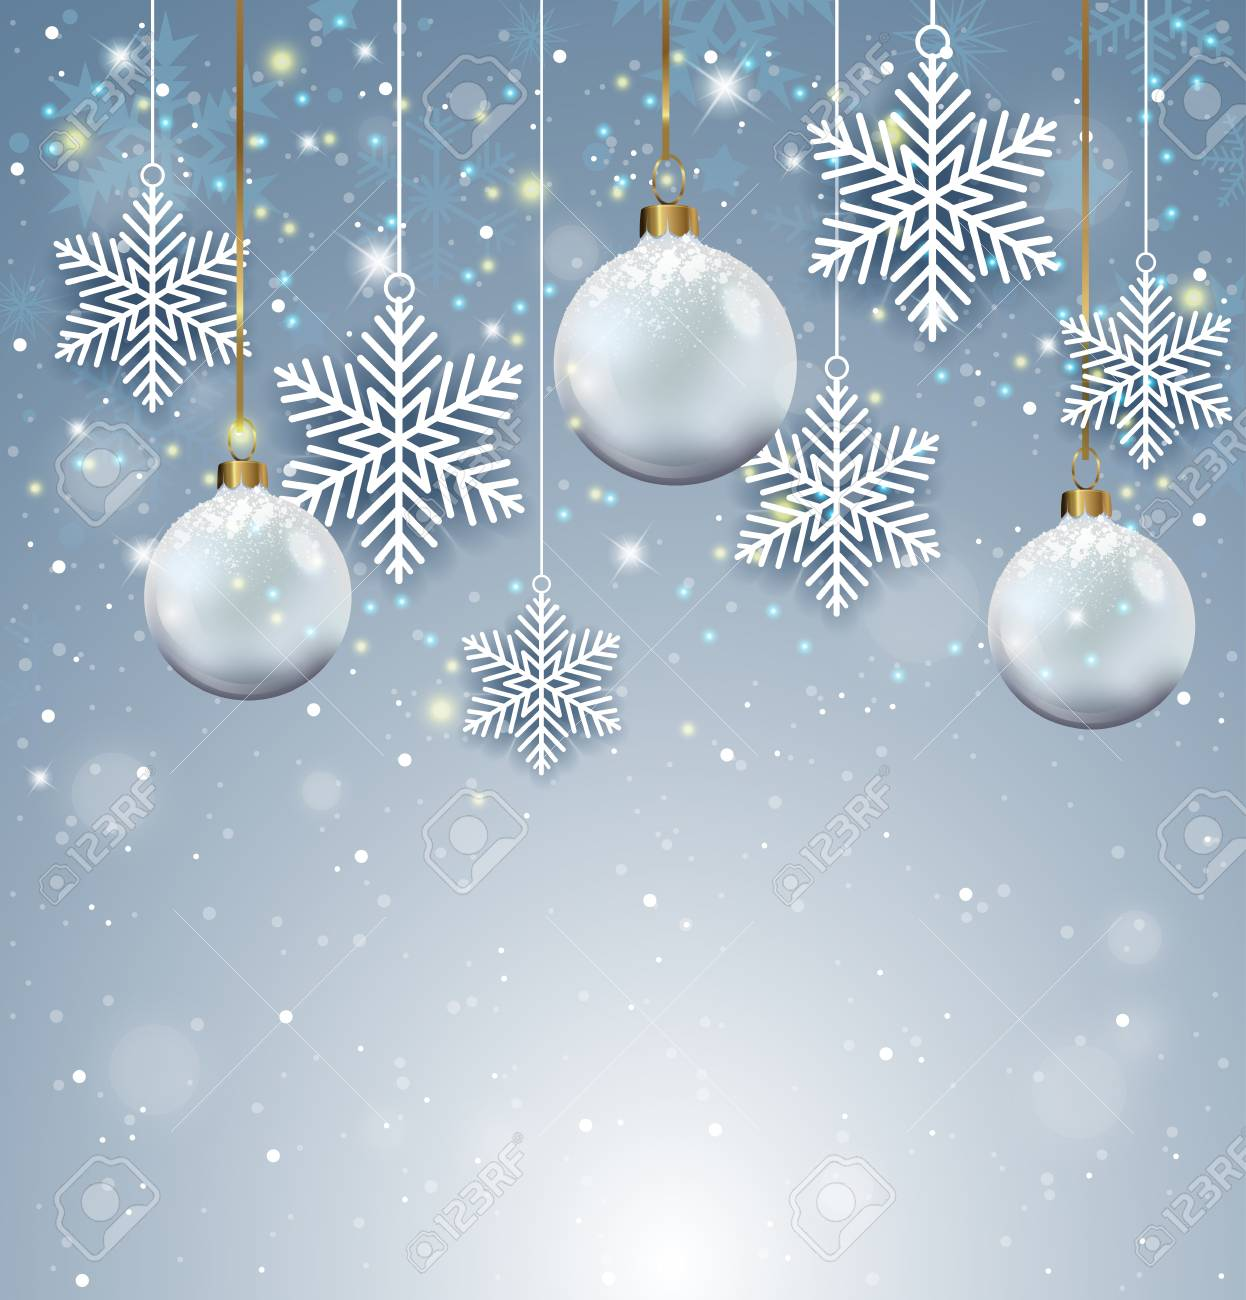 White Christmas Background.Holiday Background With White Christmas Decorations And Paper